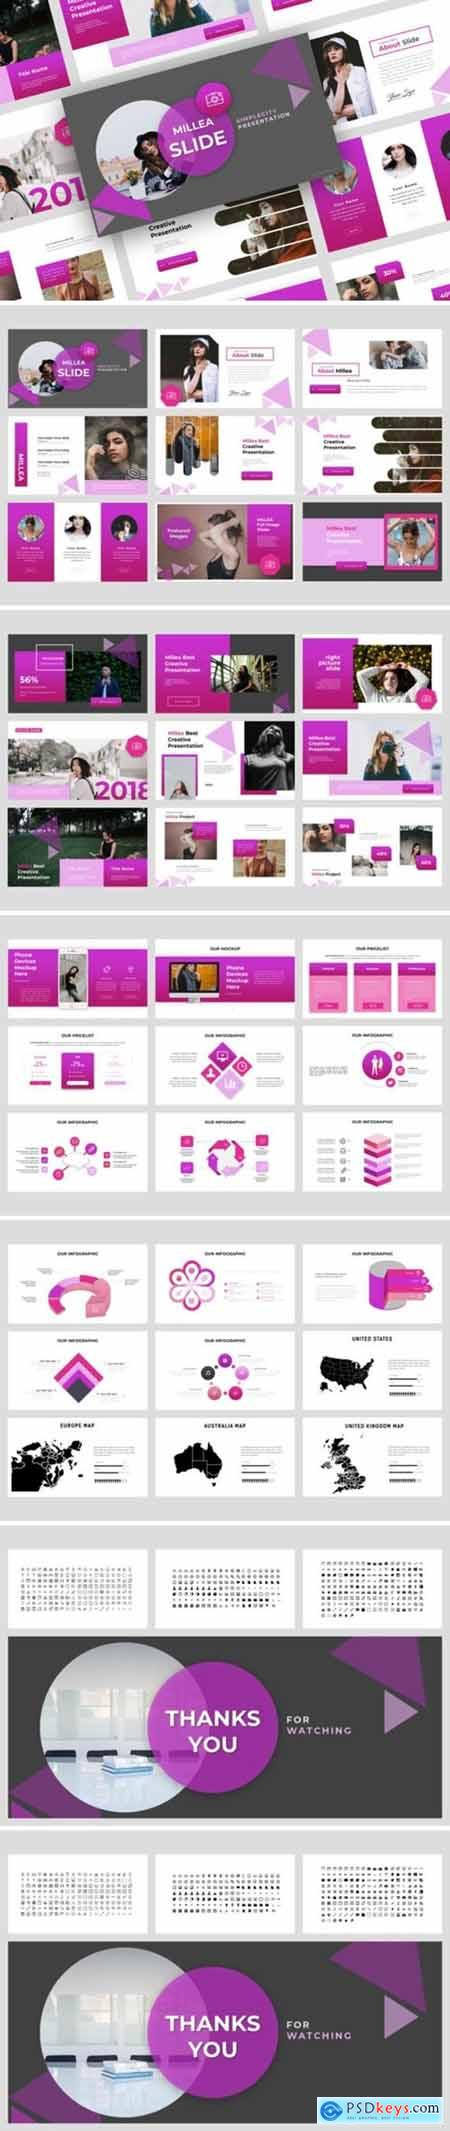 Millea Creative Powerpoint, Keynote and Google Slides Templates